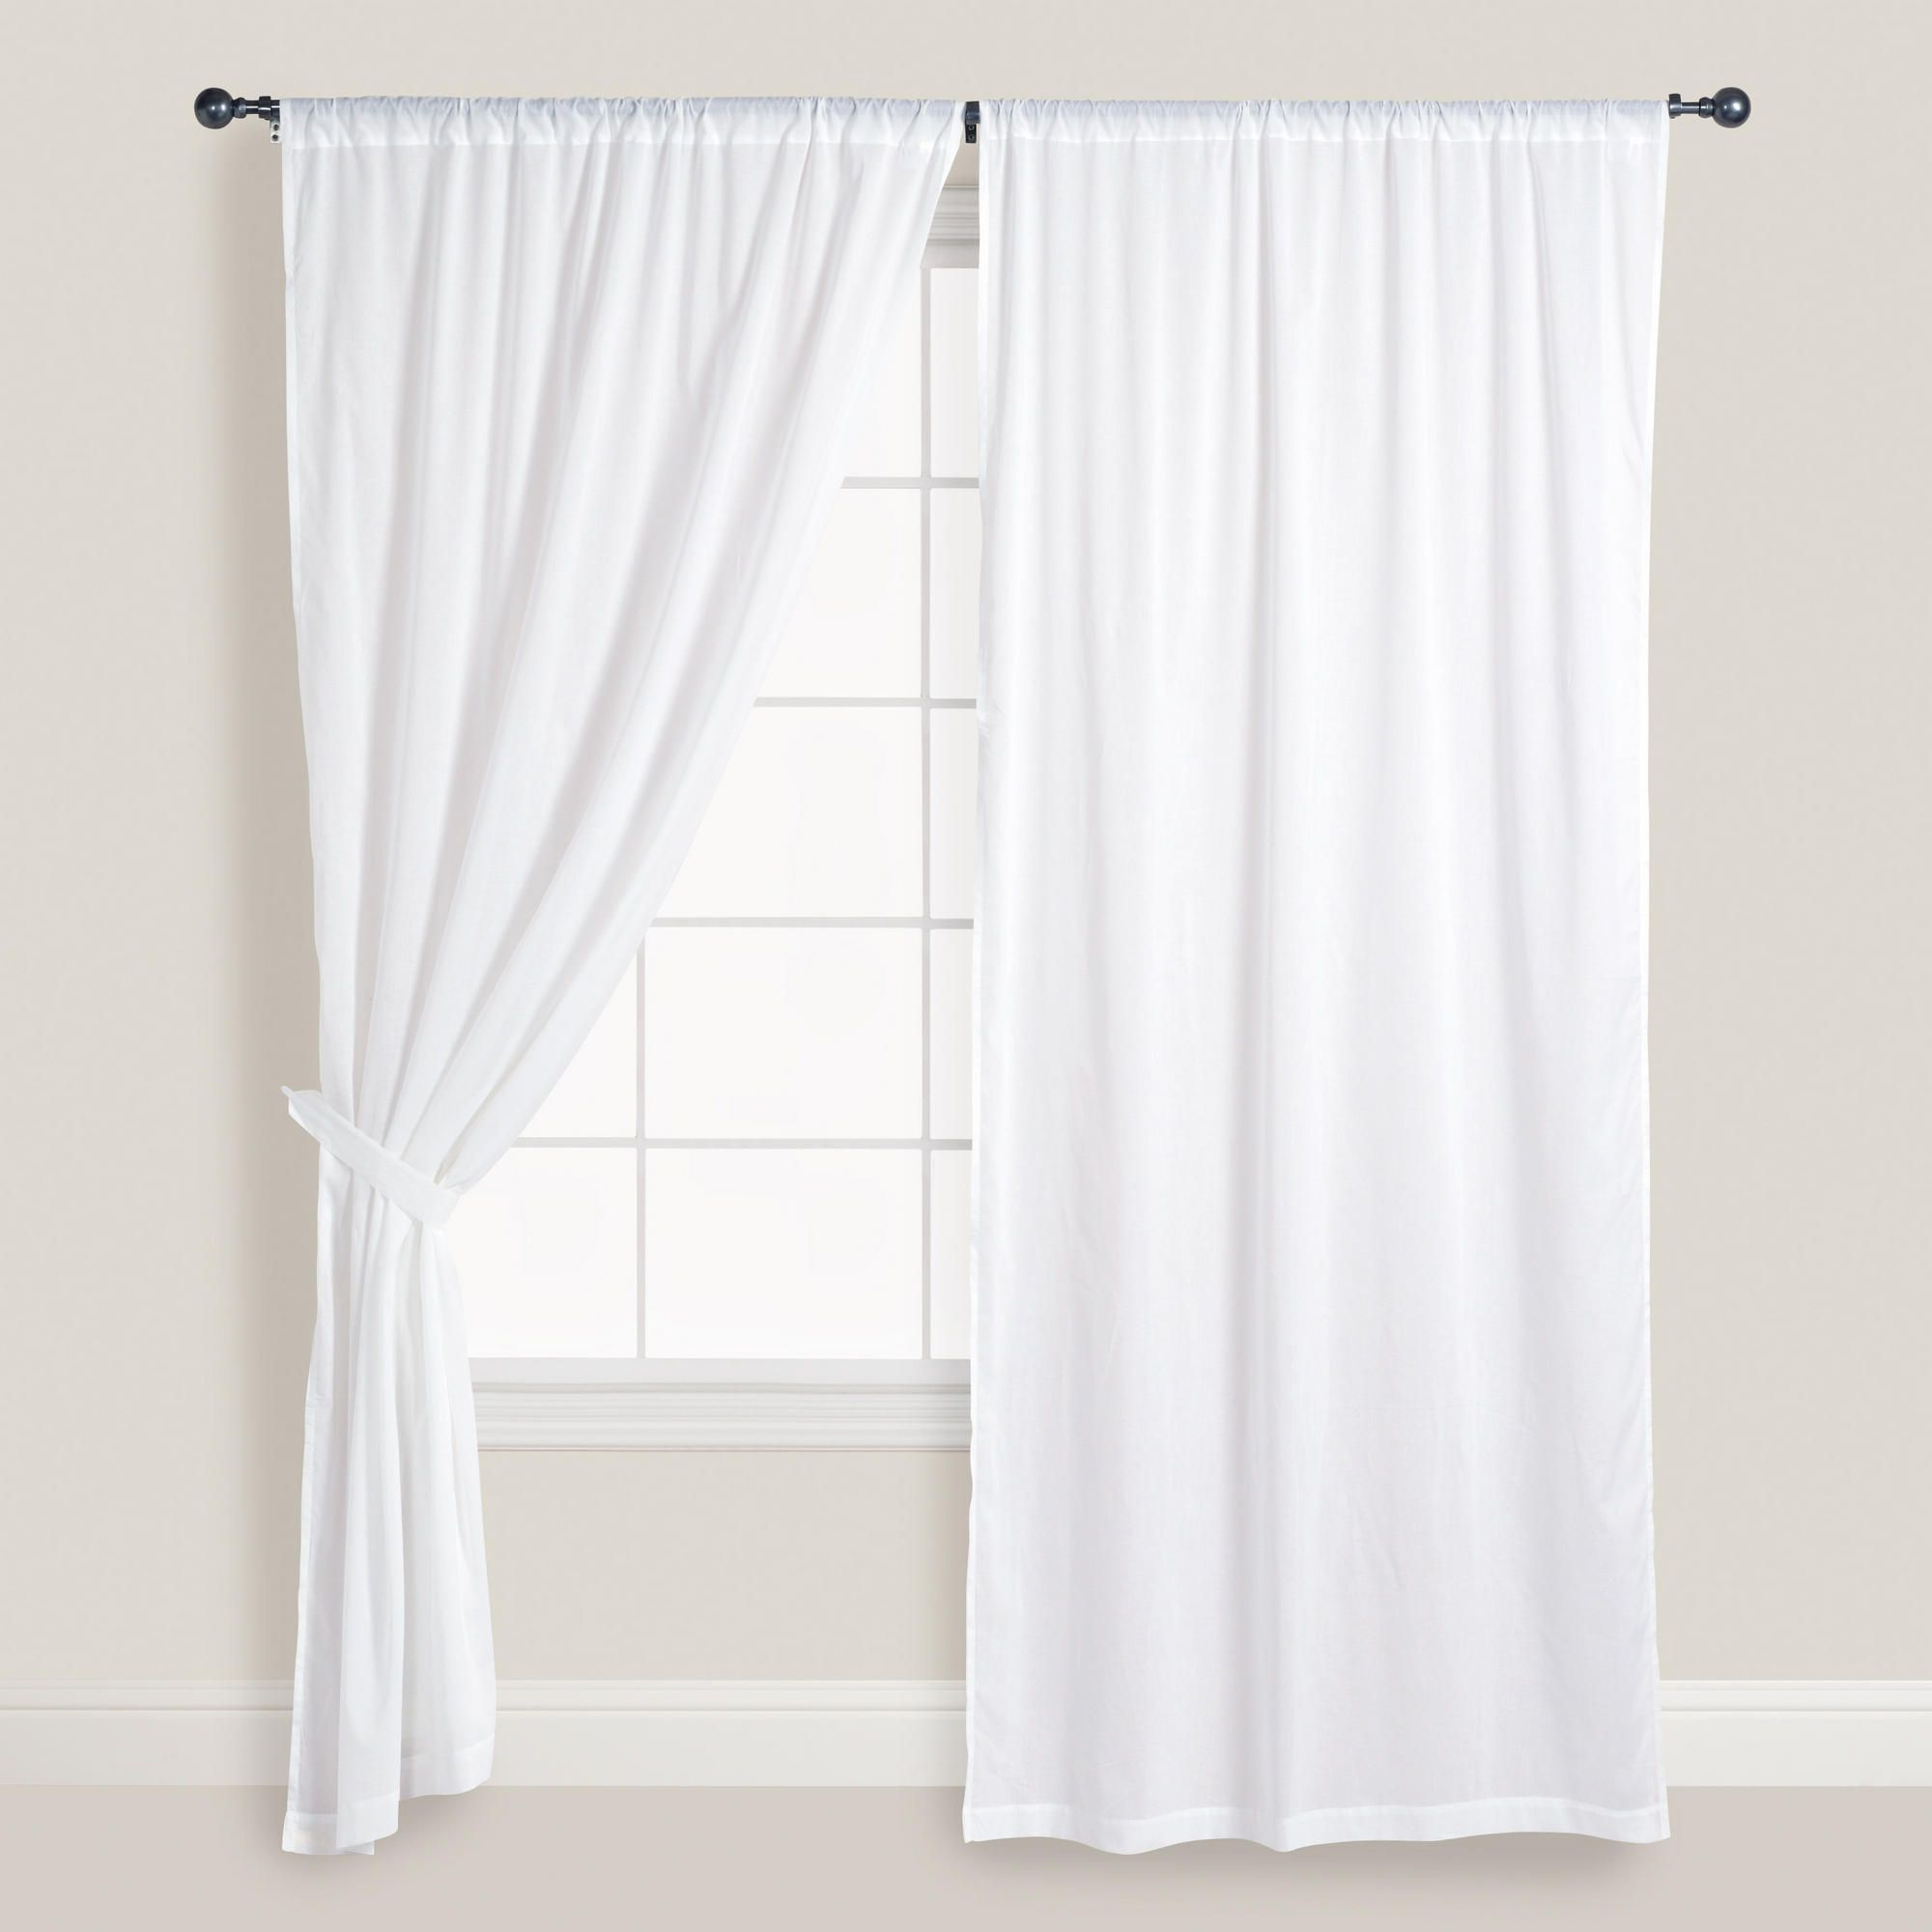 White Cotton Voile Curtains, Set of 2 | World Market | hawaii ...